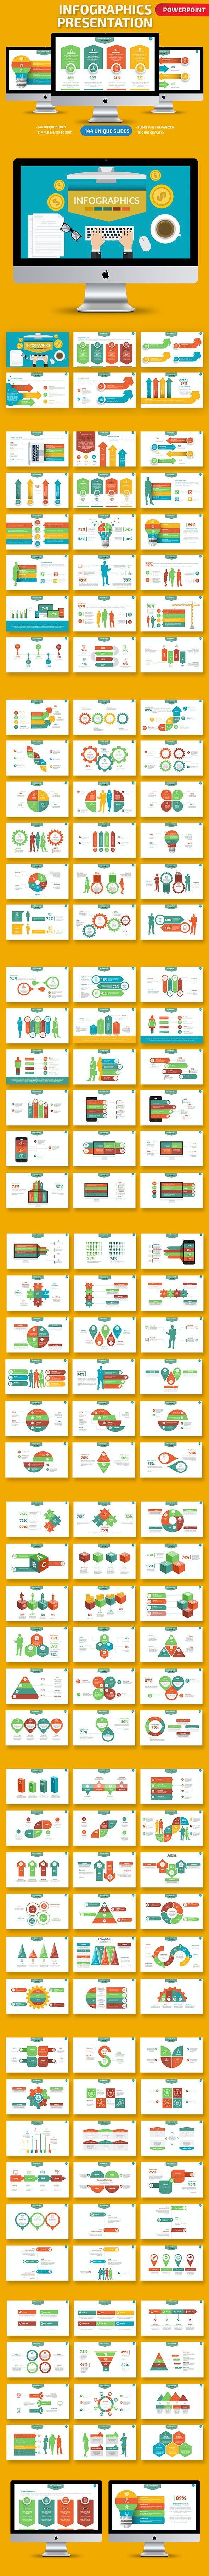 Infographic Powerpoint Present - PowerPoint Templates Presentation Templates